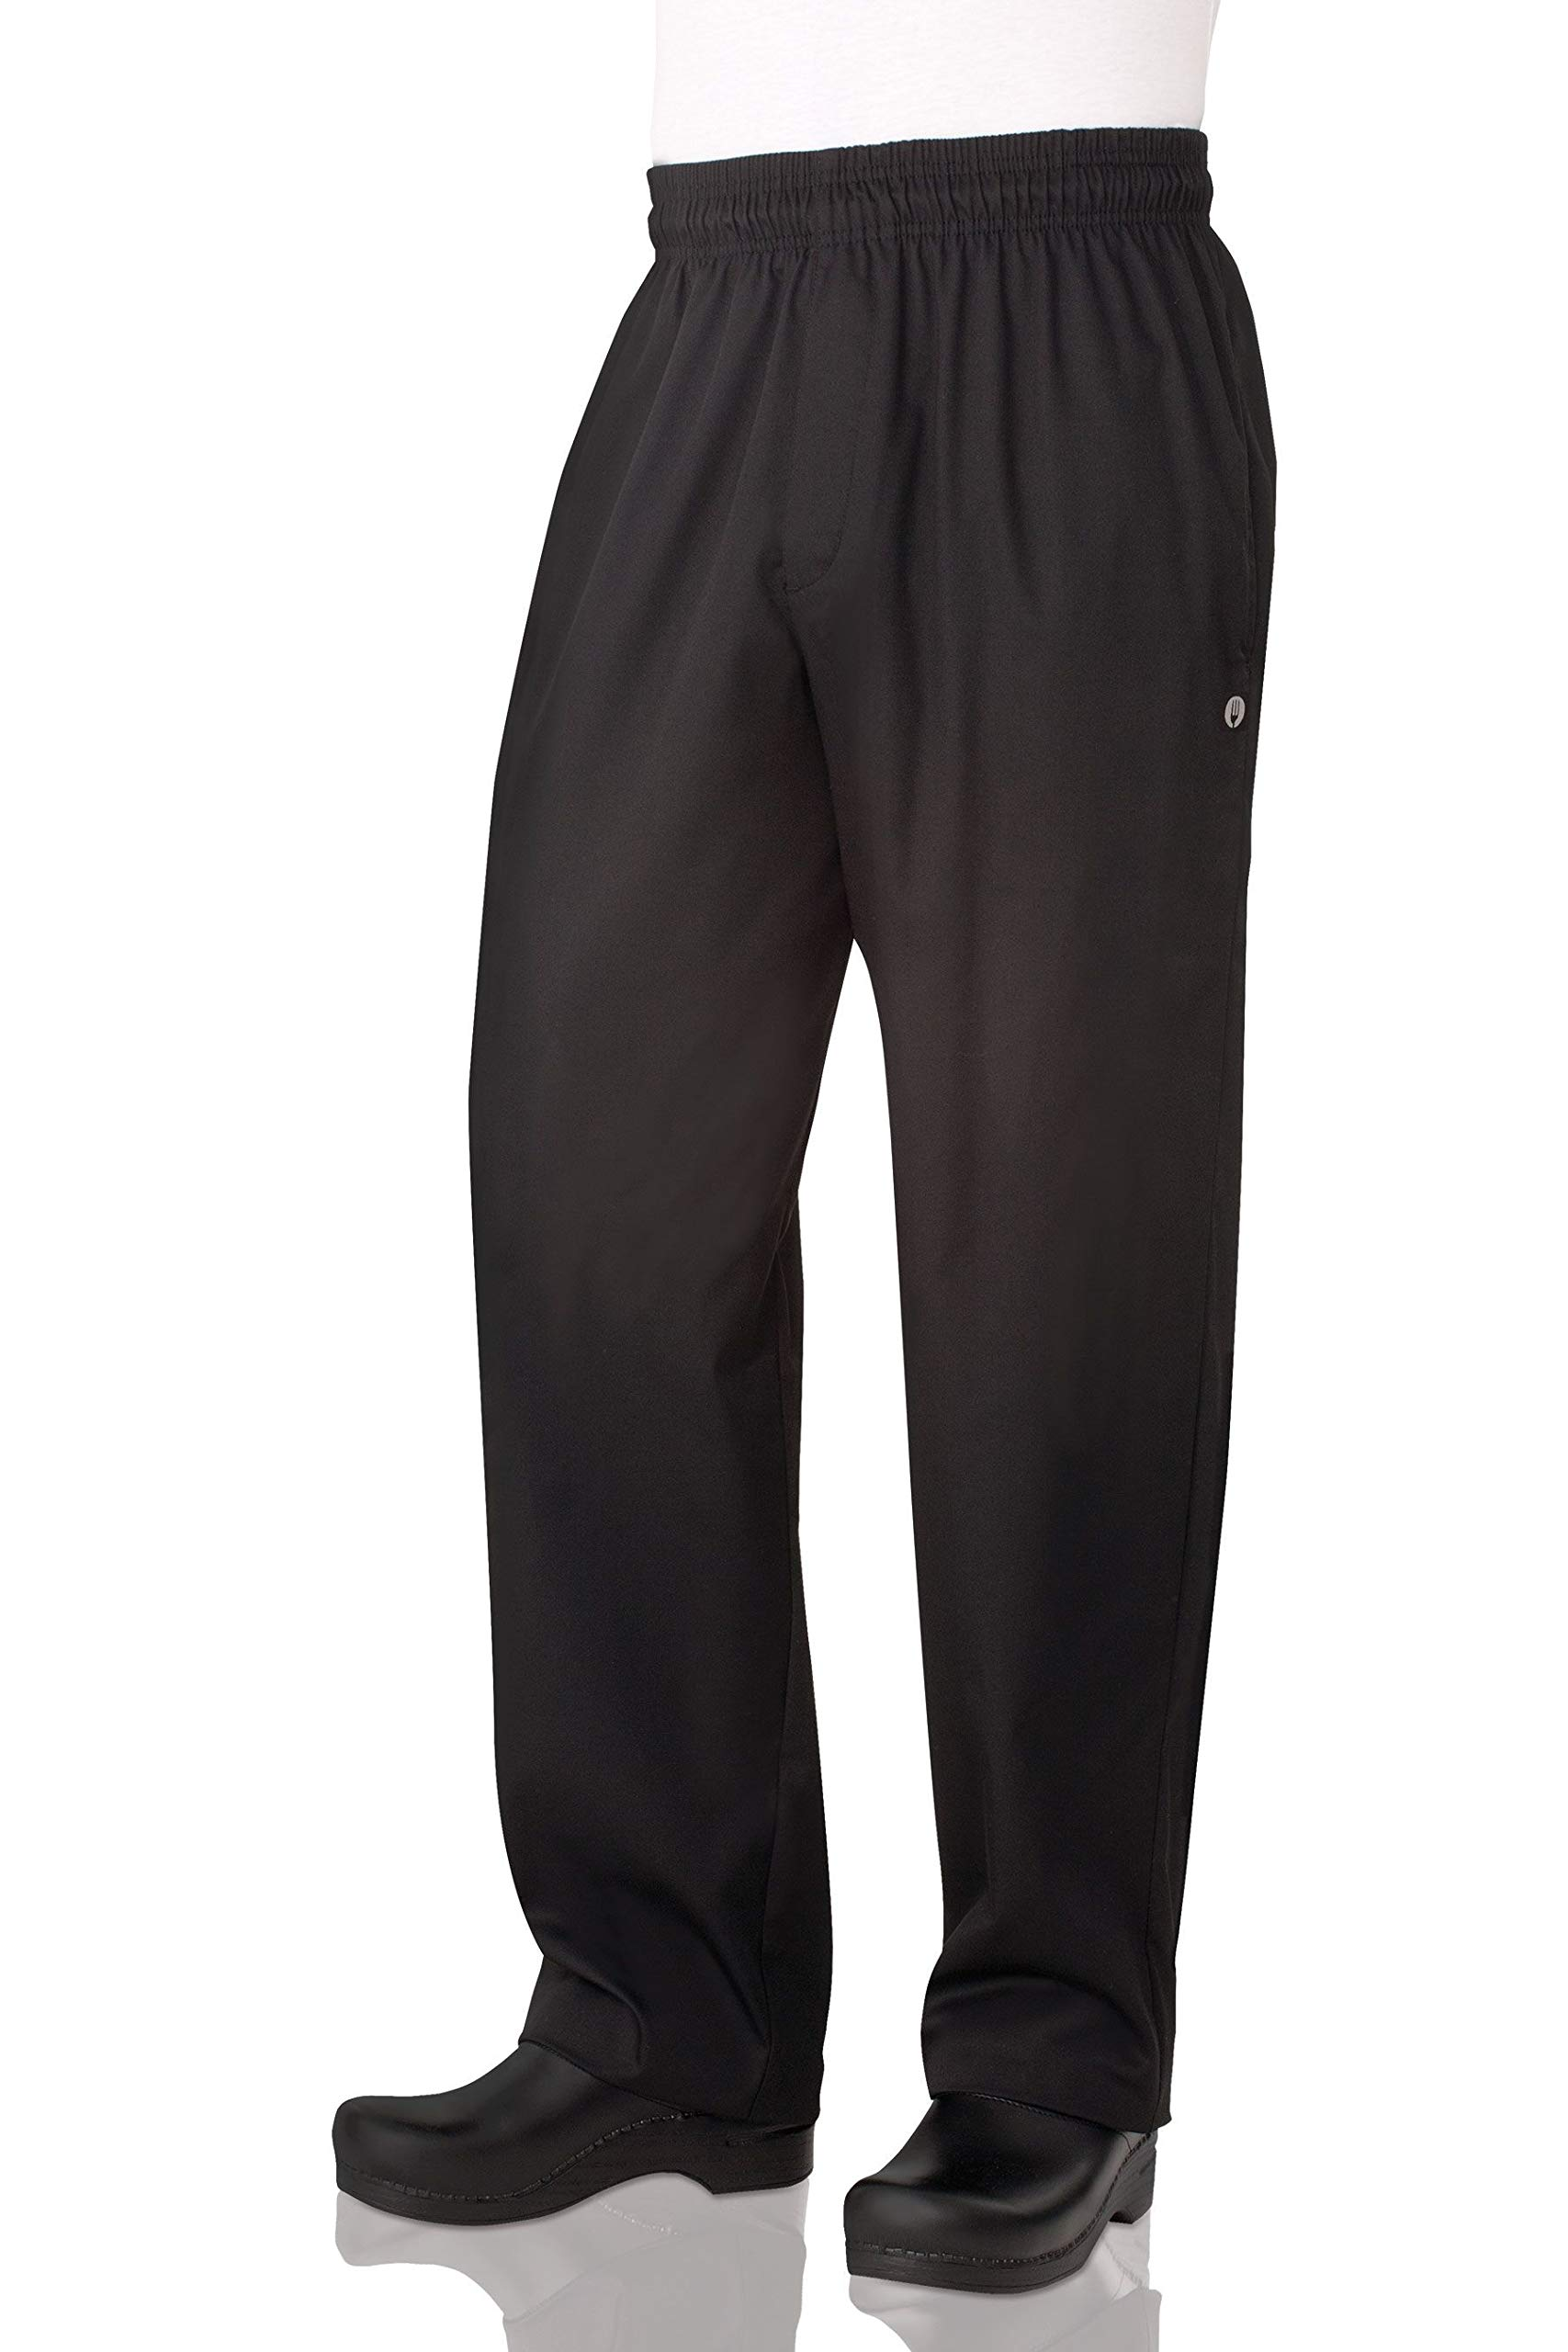 Chef Works Men's Essential Baggy Zip-Fly Chef Pant, Black, Medium by Chef Works